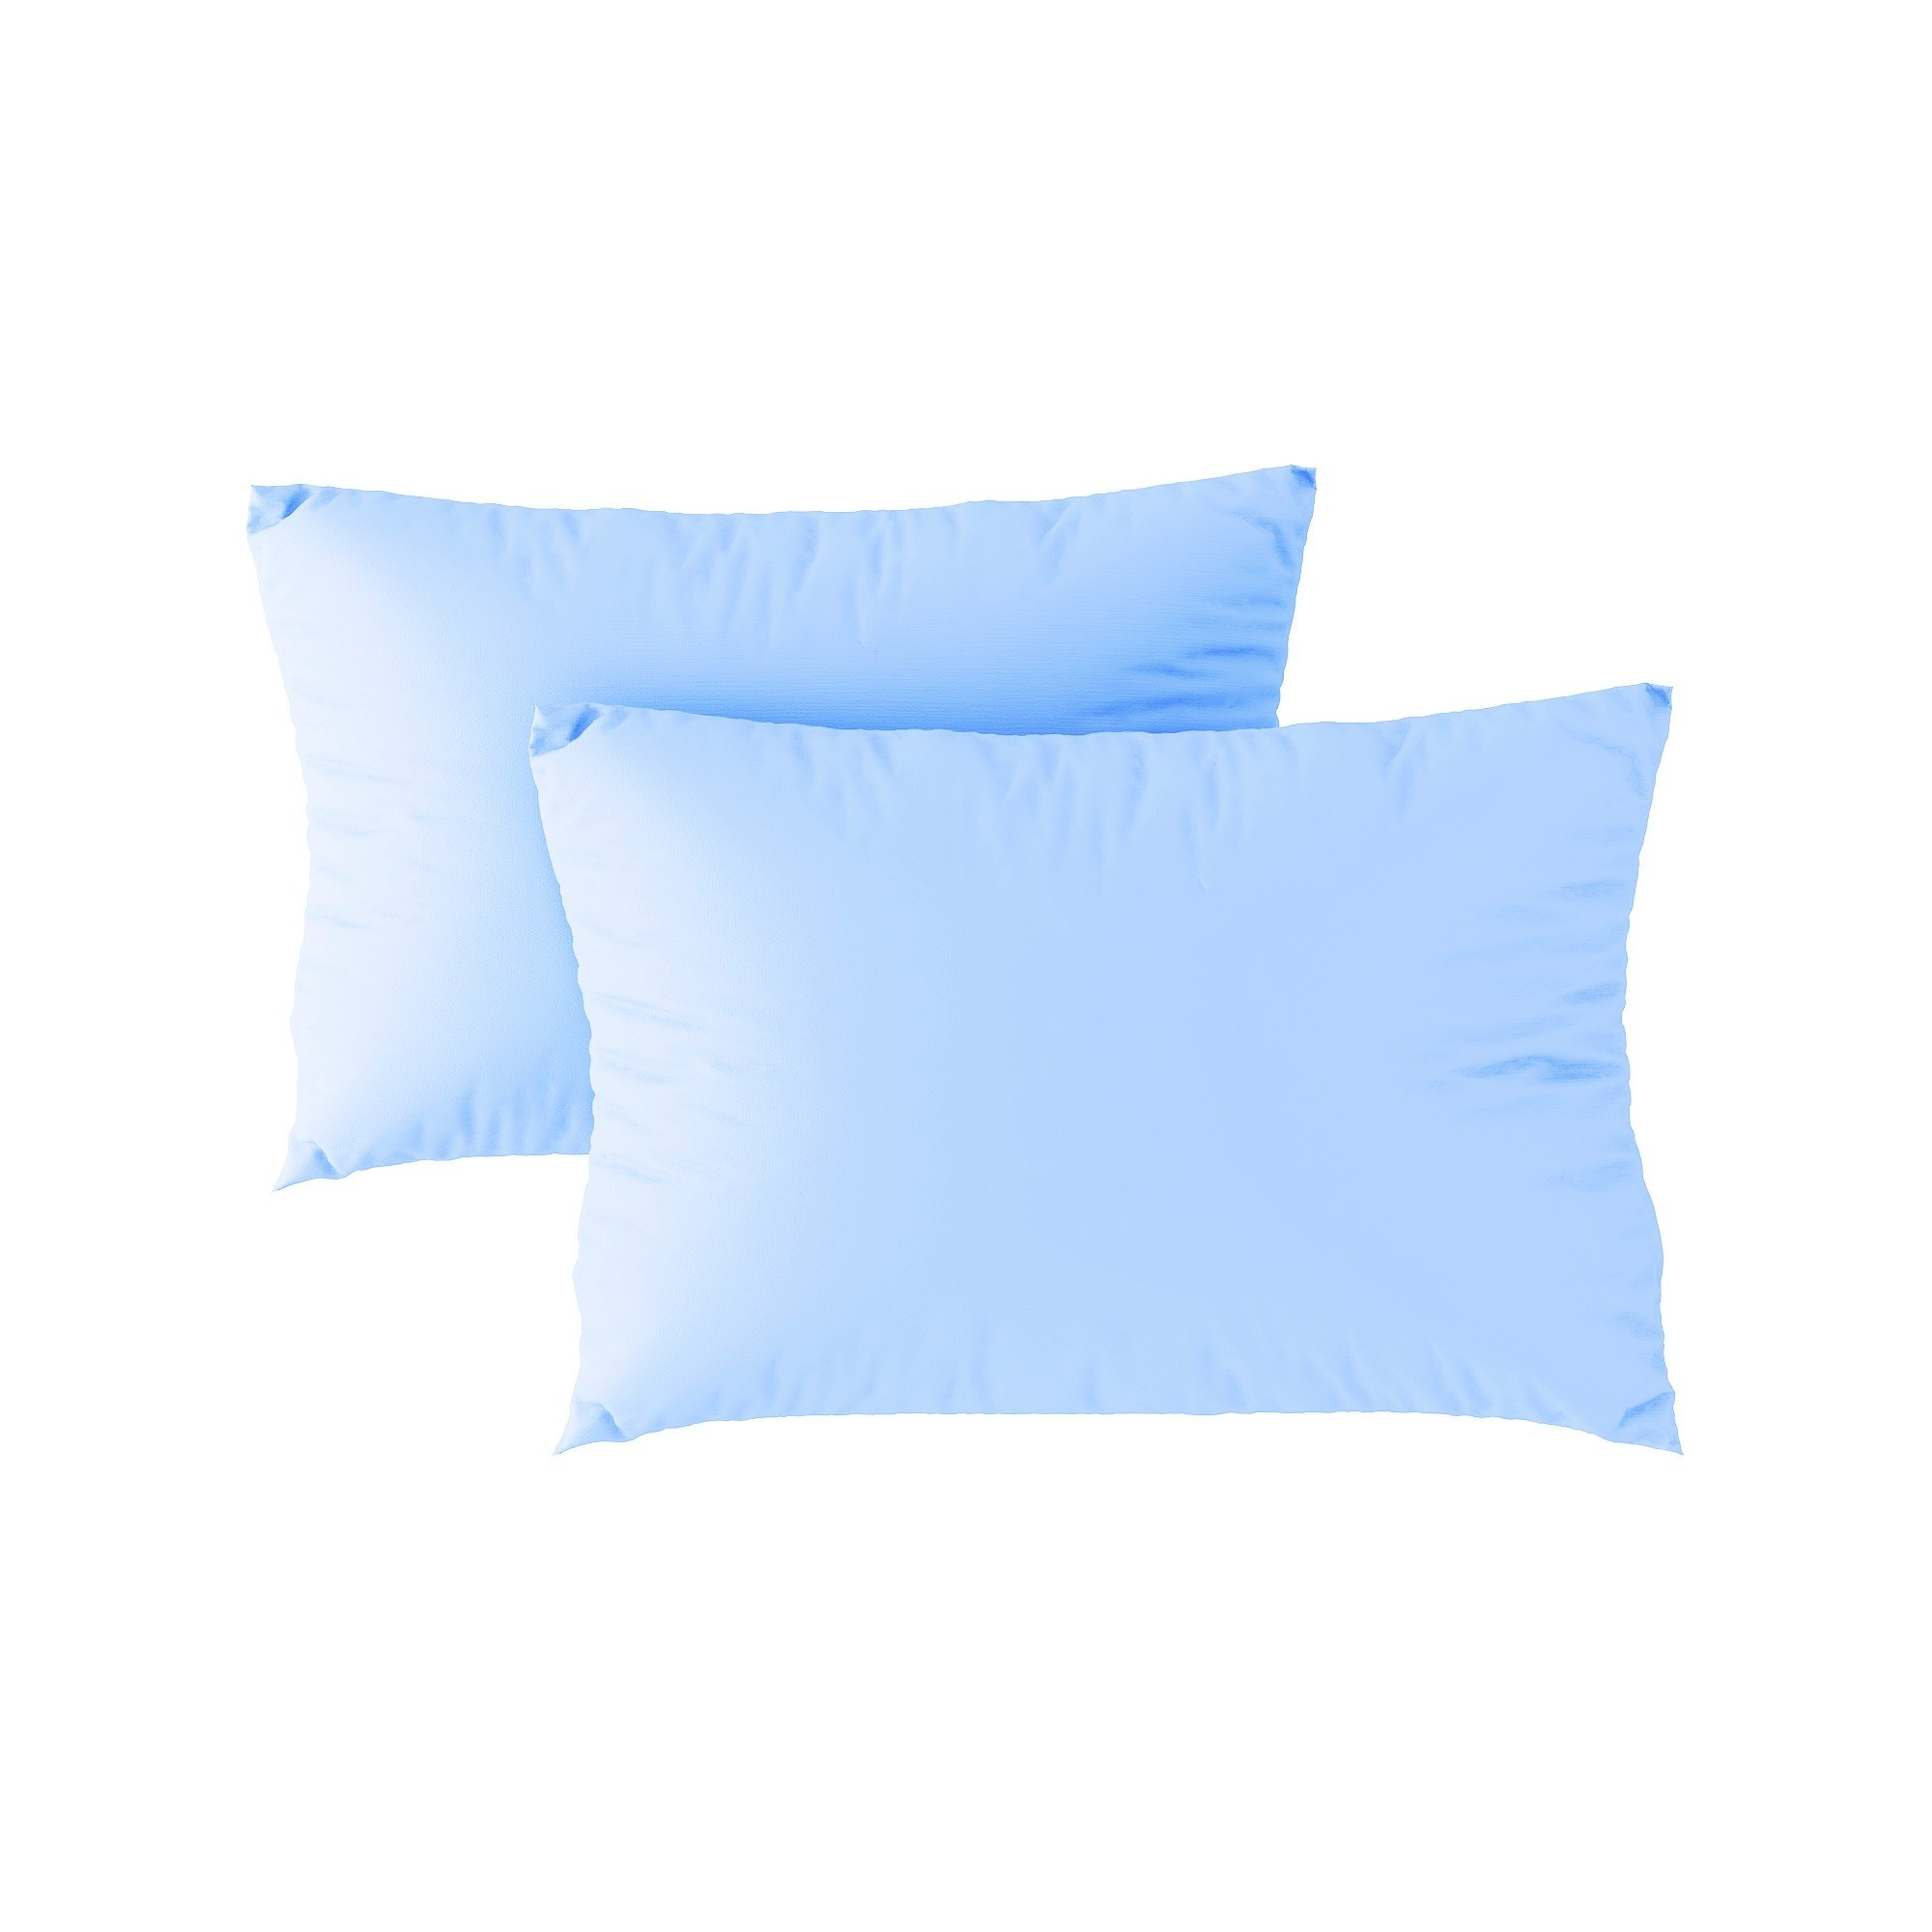 Standard pillow case 07 Sky blue (2pcs)